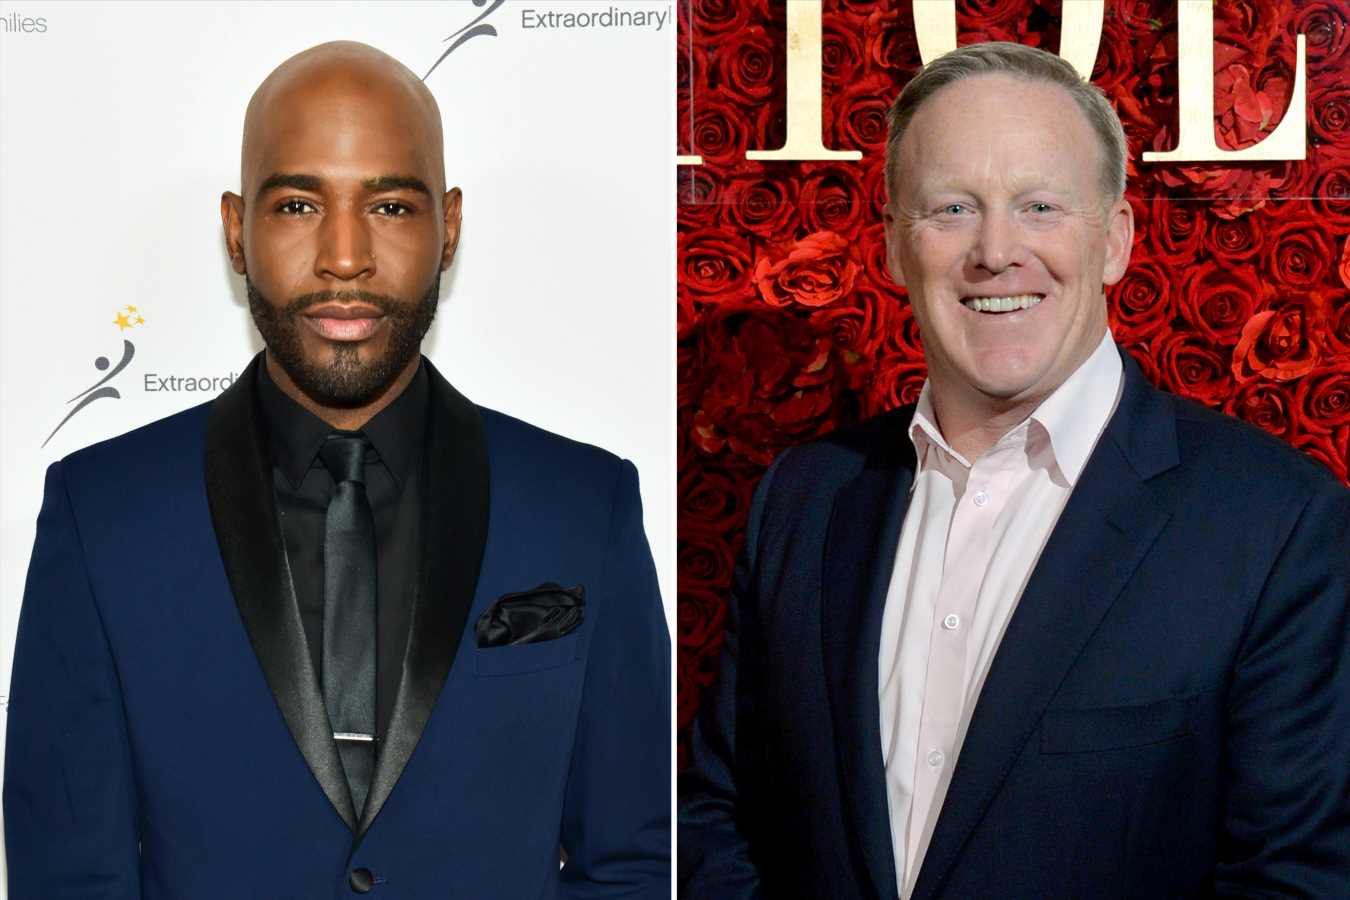 Karamo Brown Deletes Twitter After Saying He's 'Excited to Sit Down with' Controversial DWTS Costar Sean Spicer